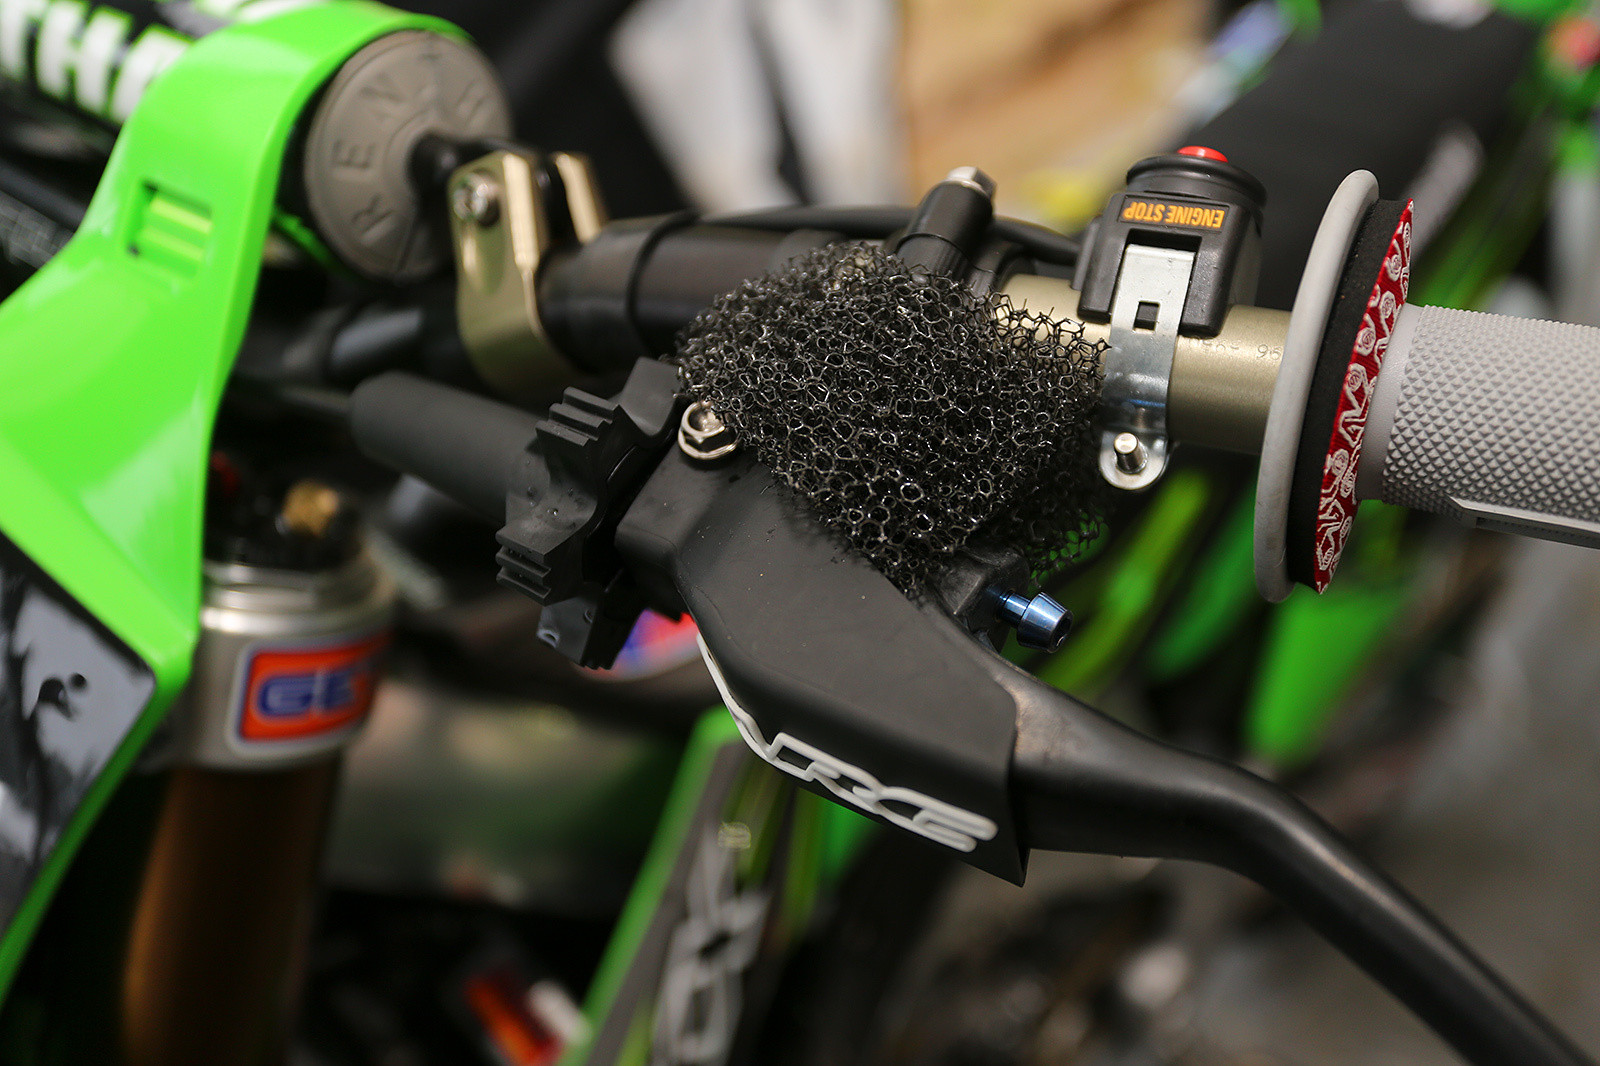 With his GP experience on sandy tracks like Lommel, Ollie Stone does all he can to keep sand out of things like the clutch lever mechanism.